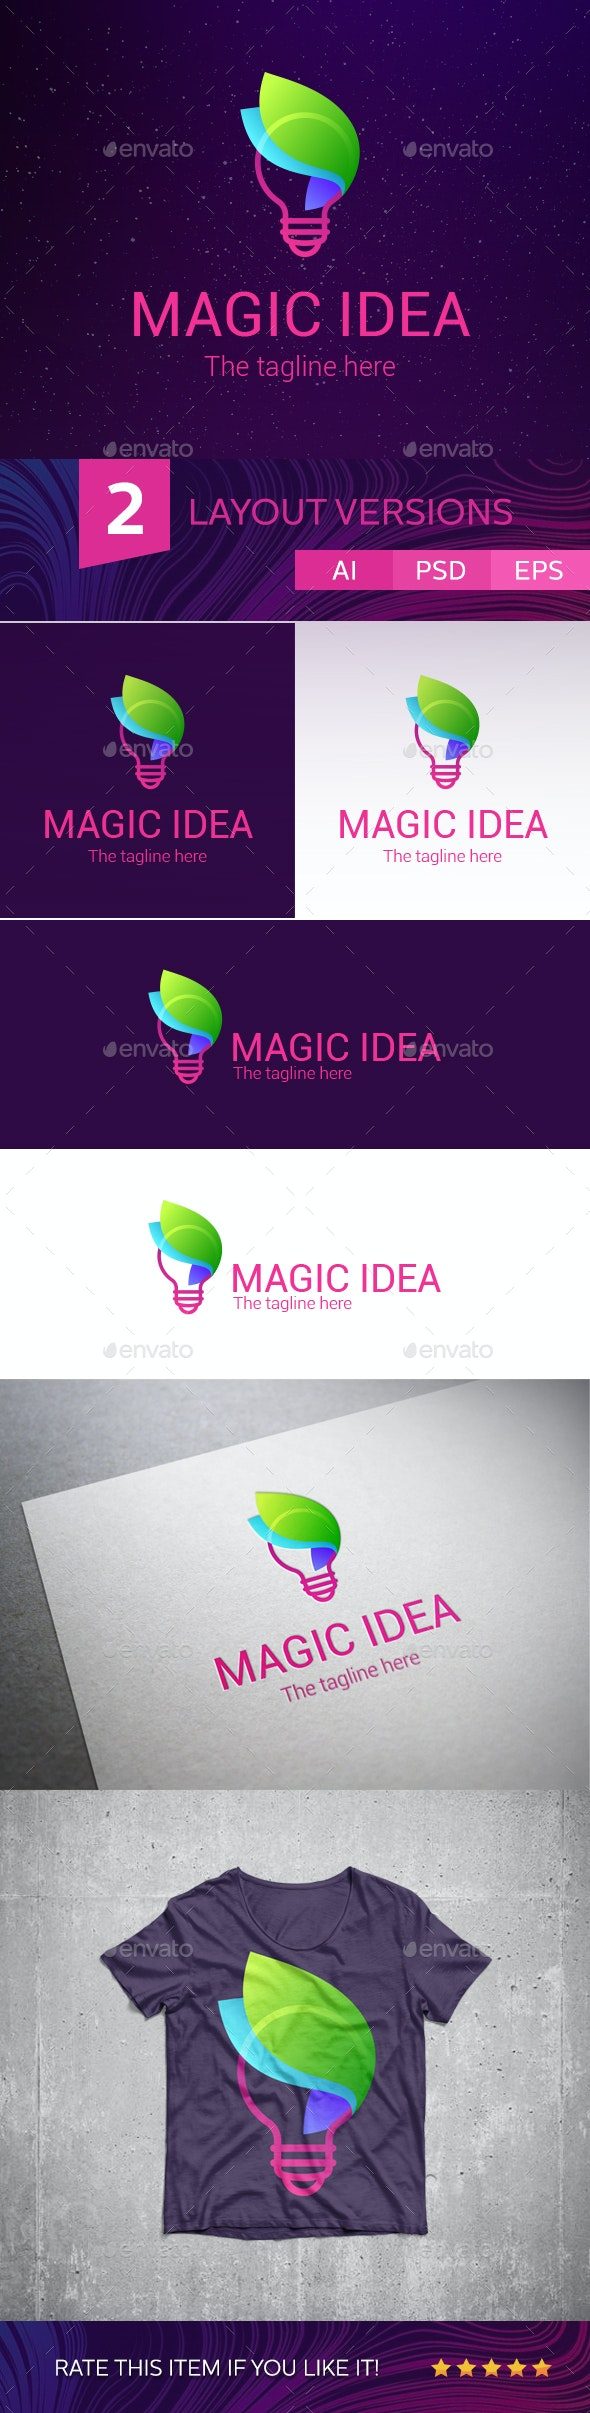 Magic Idea Logo - Symbols Logo Templates